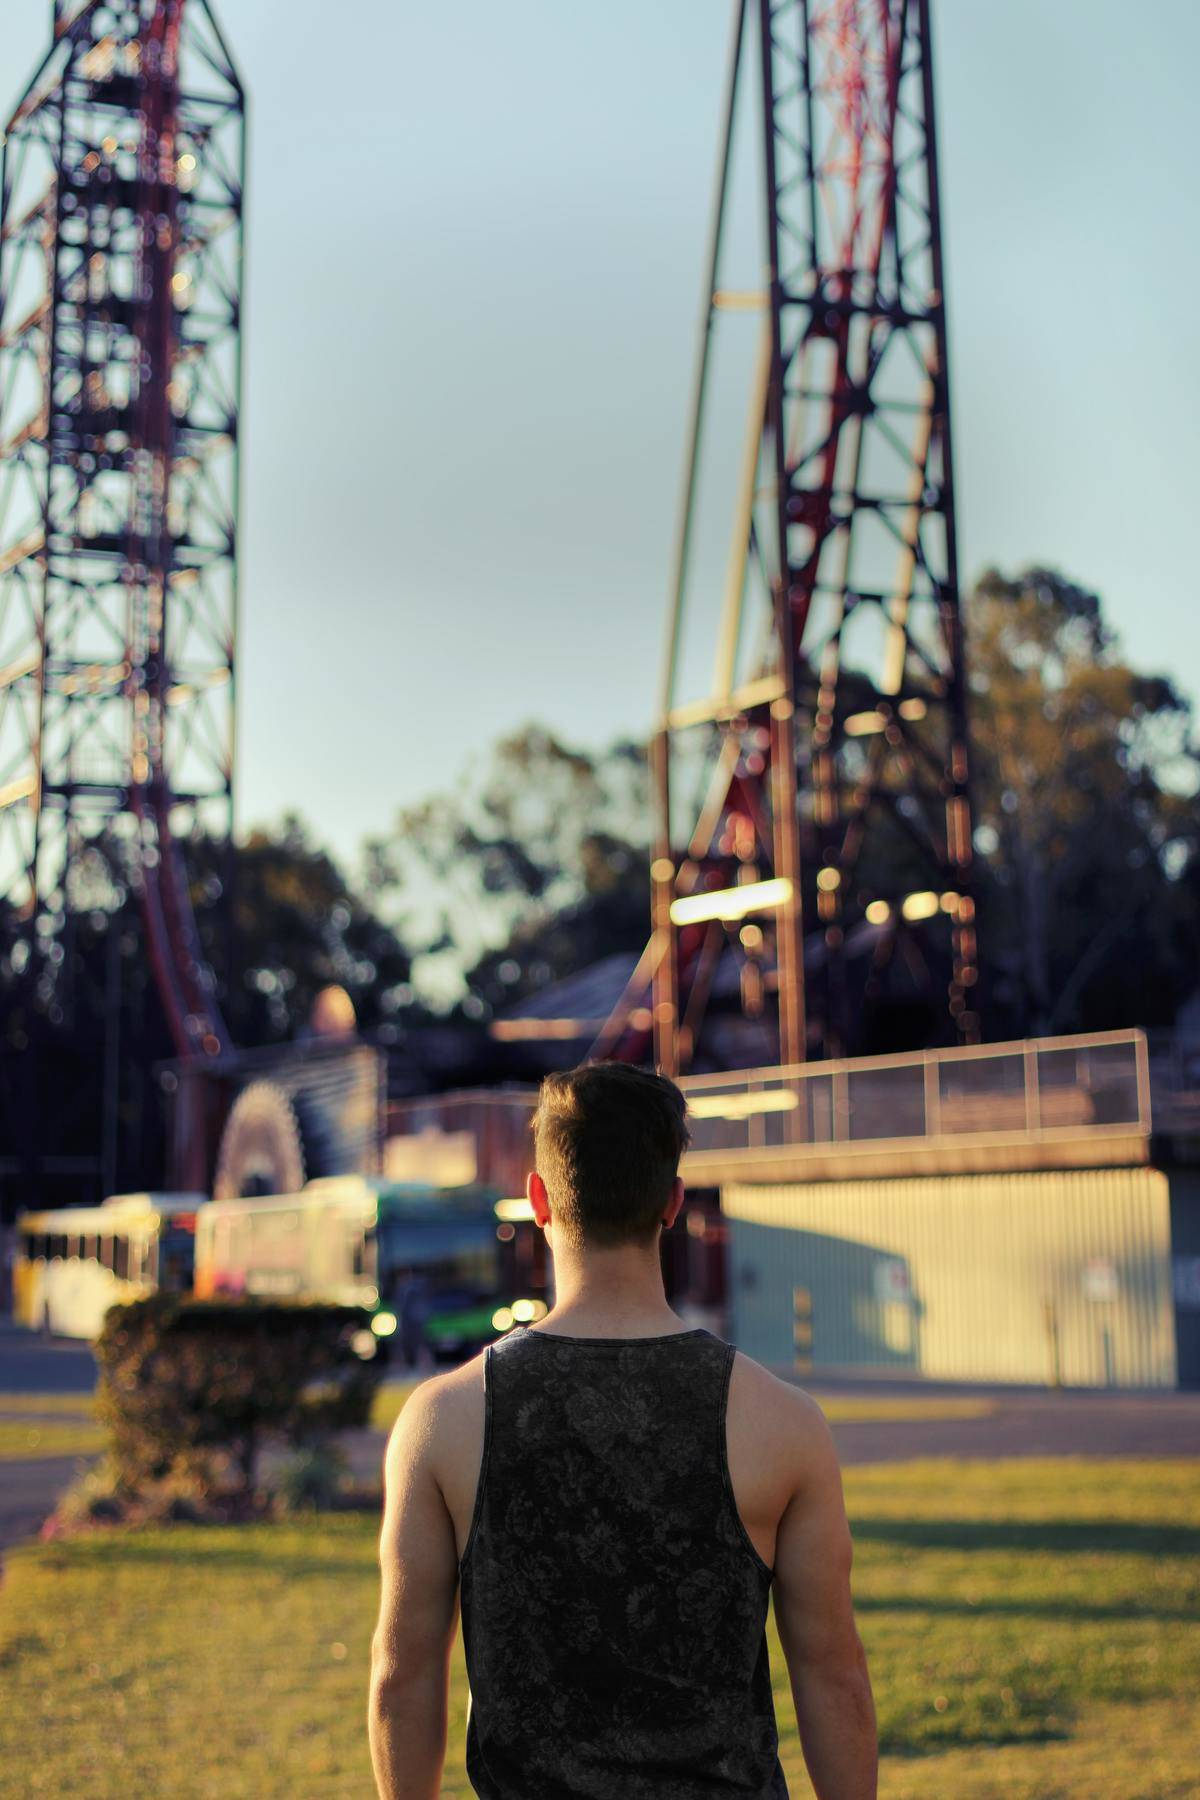 Man in front of rollercoaster looking up